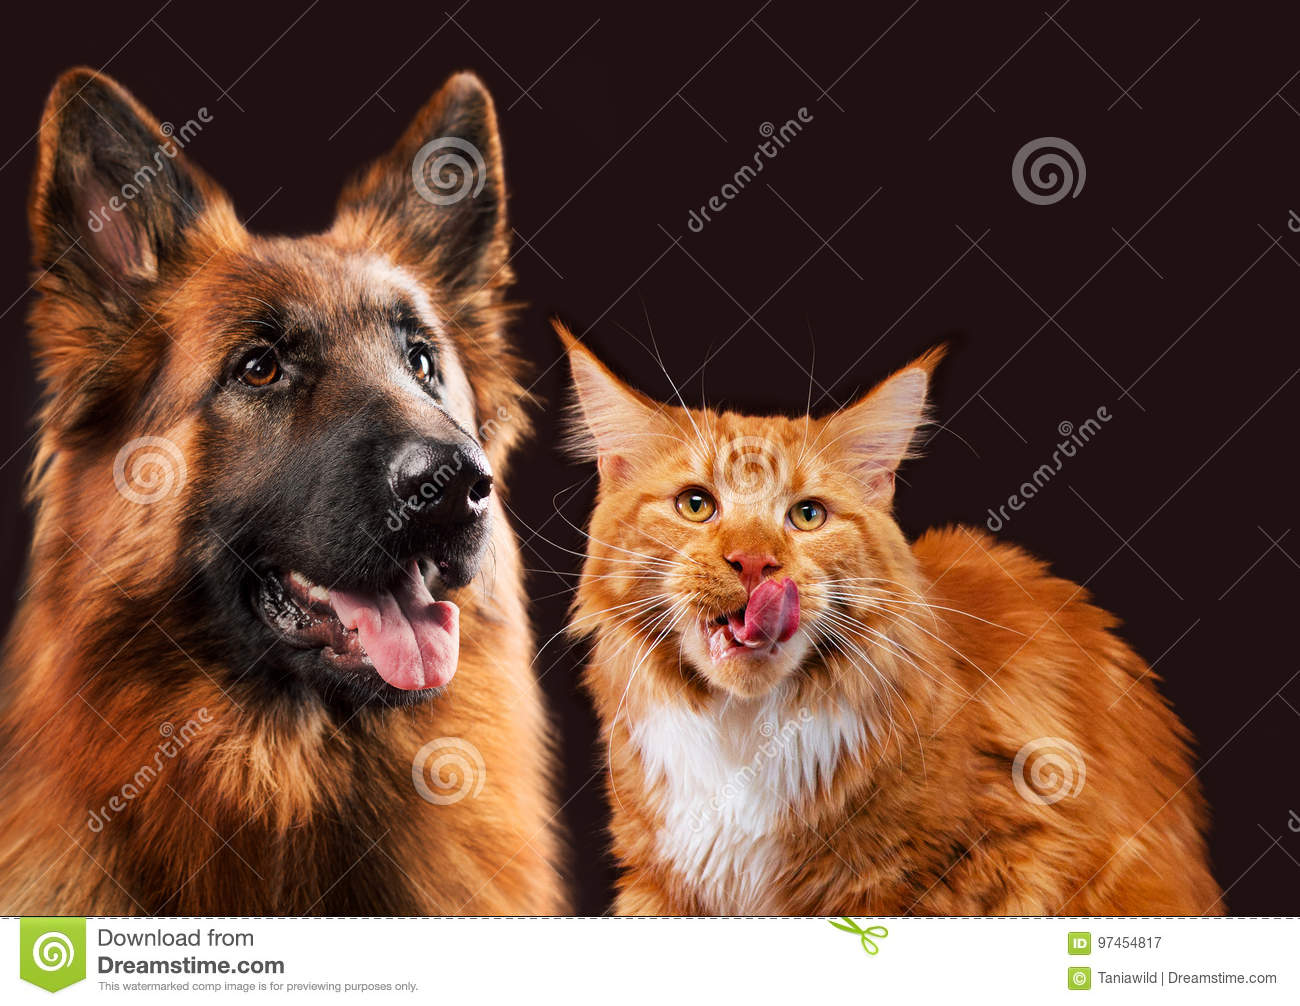 Cat And Dog Together Maine Coon Kitten German Shepherd Look At